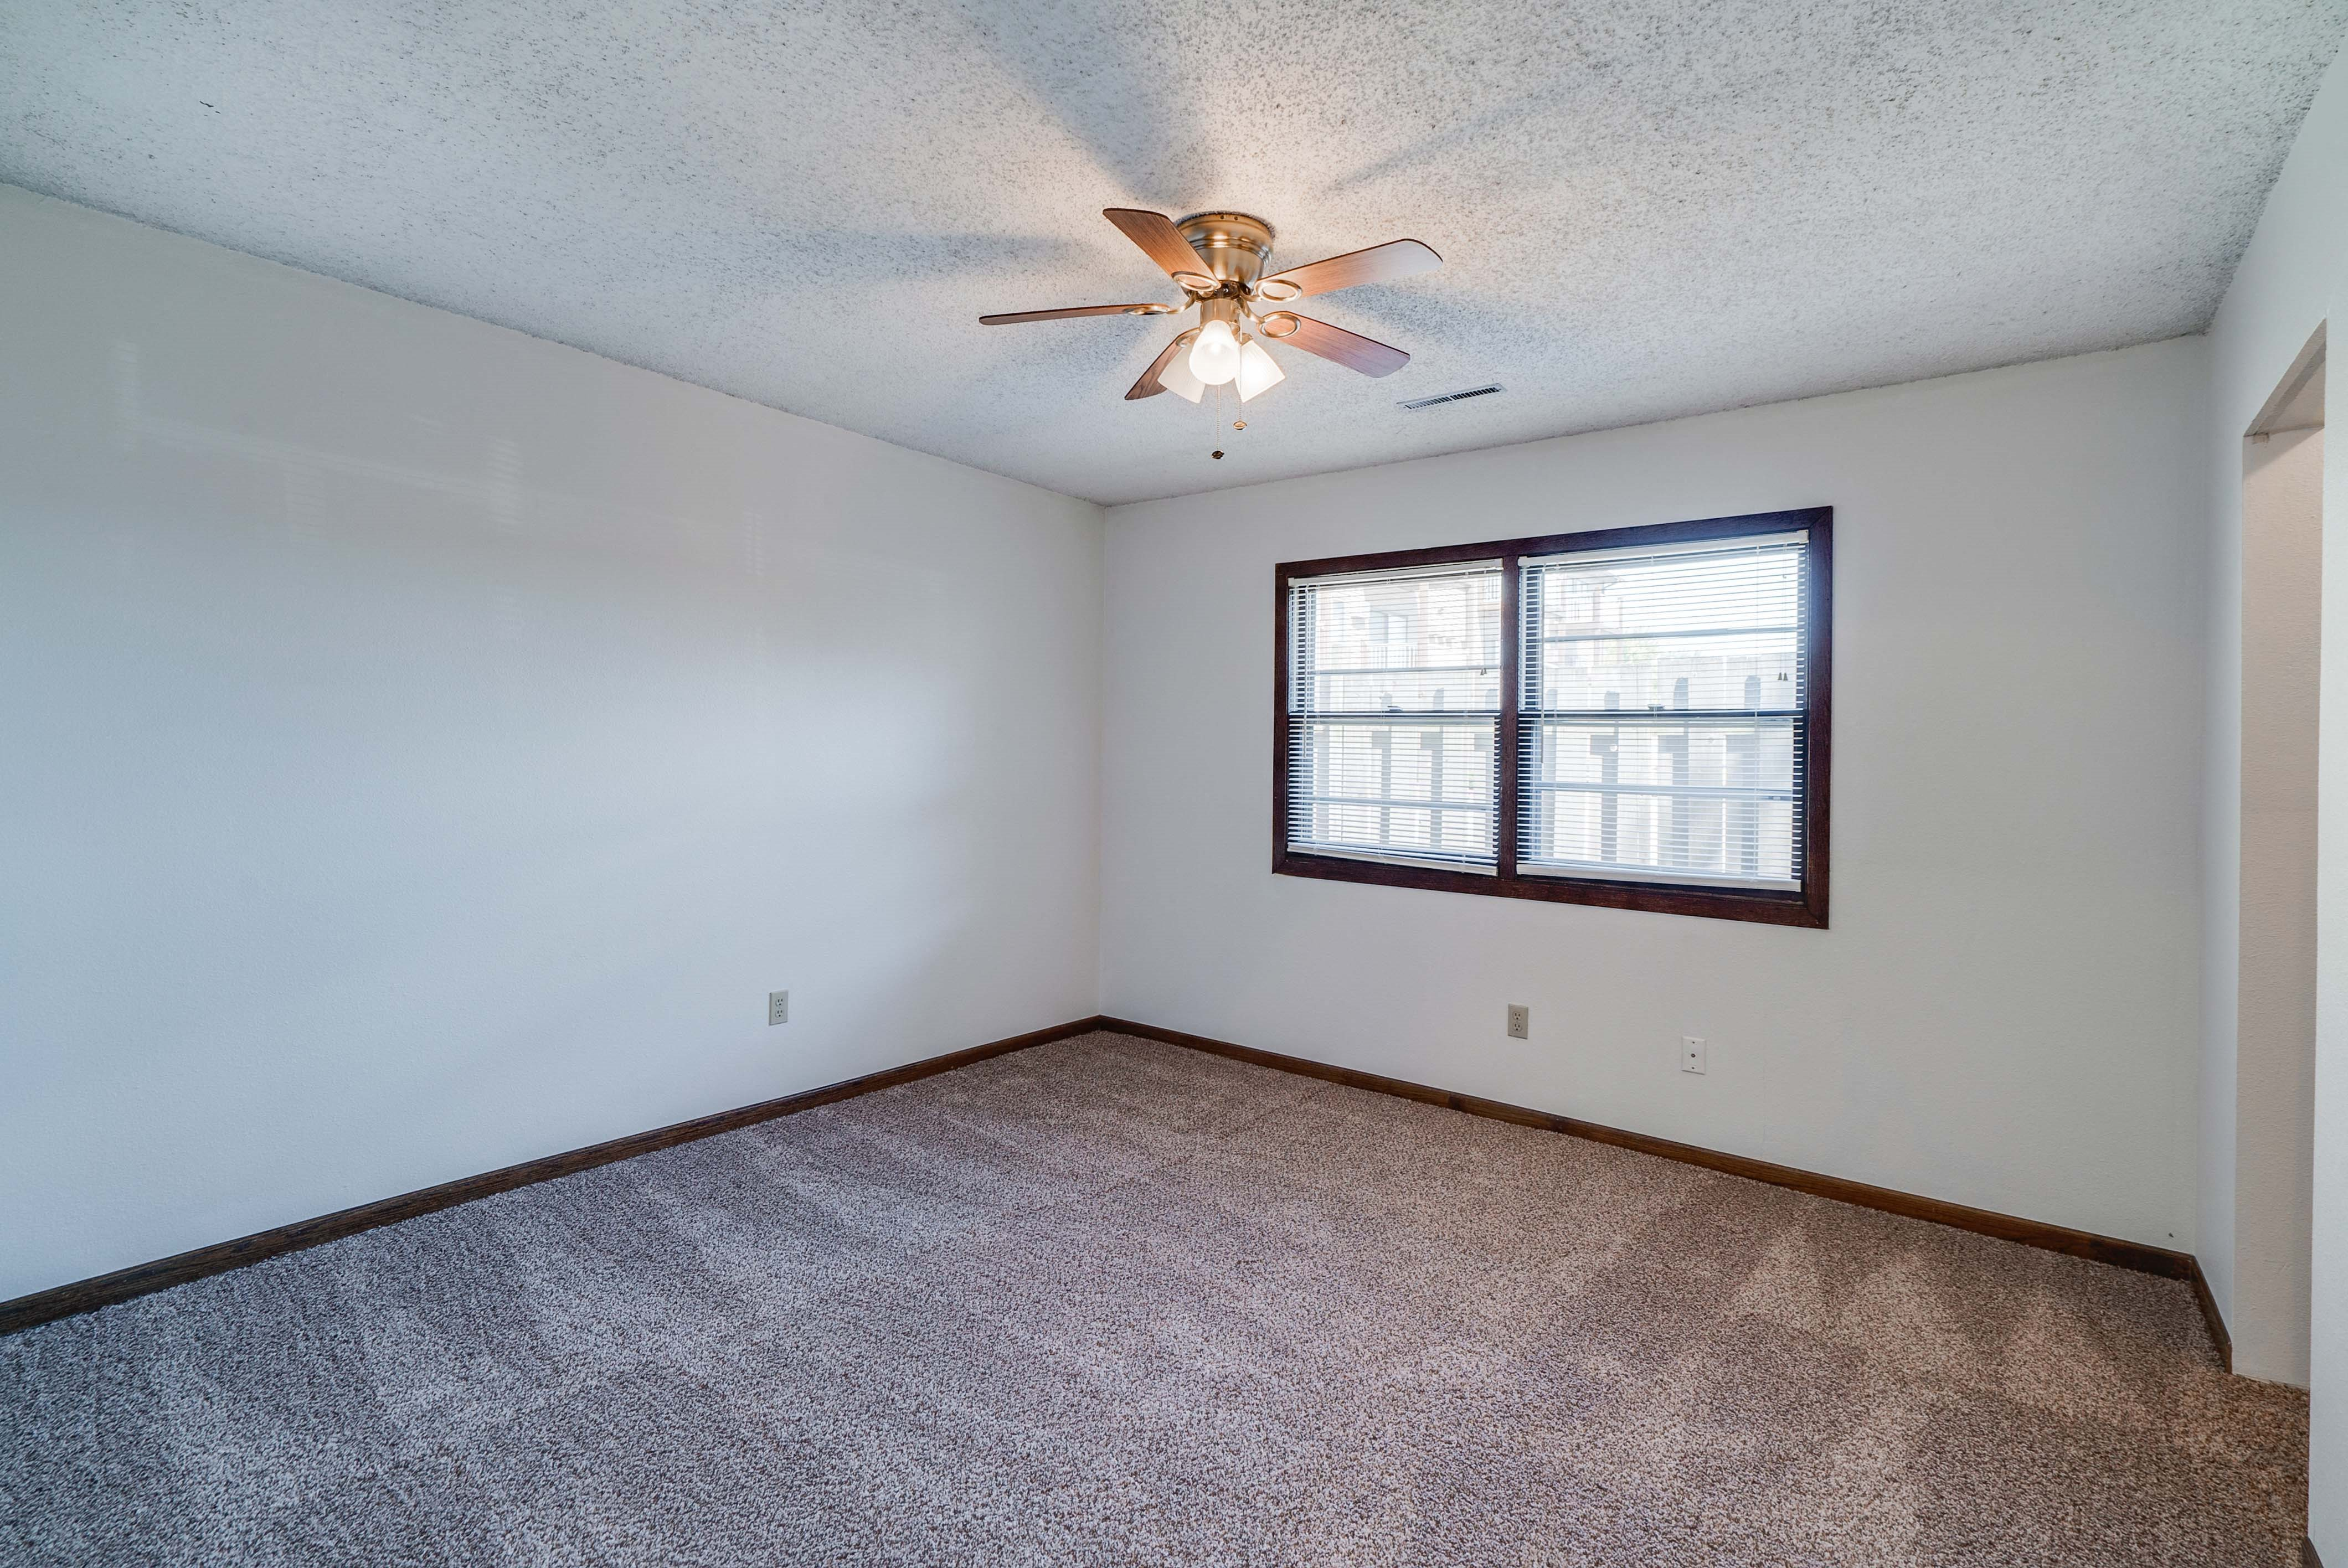 Bedroom with ceiling fan and large windows at South View Apartments